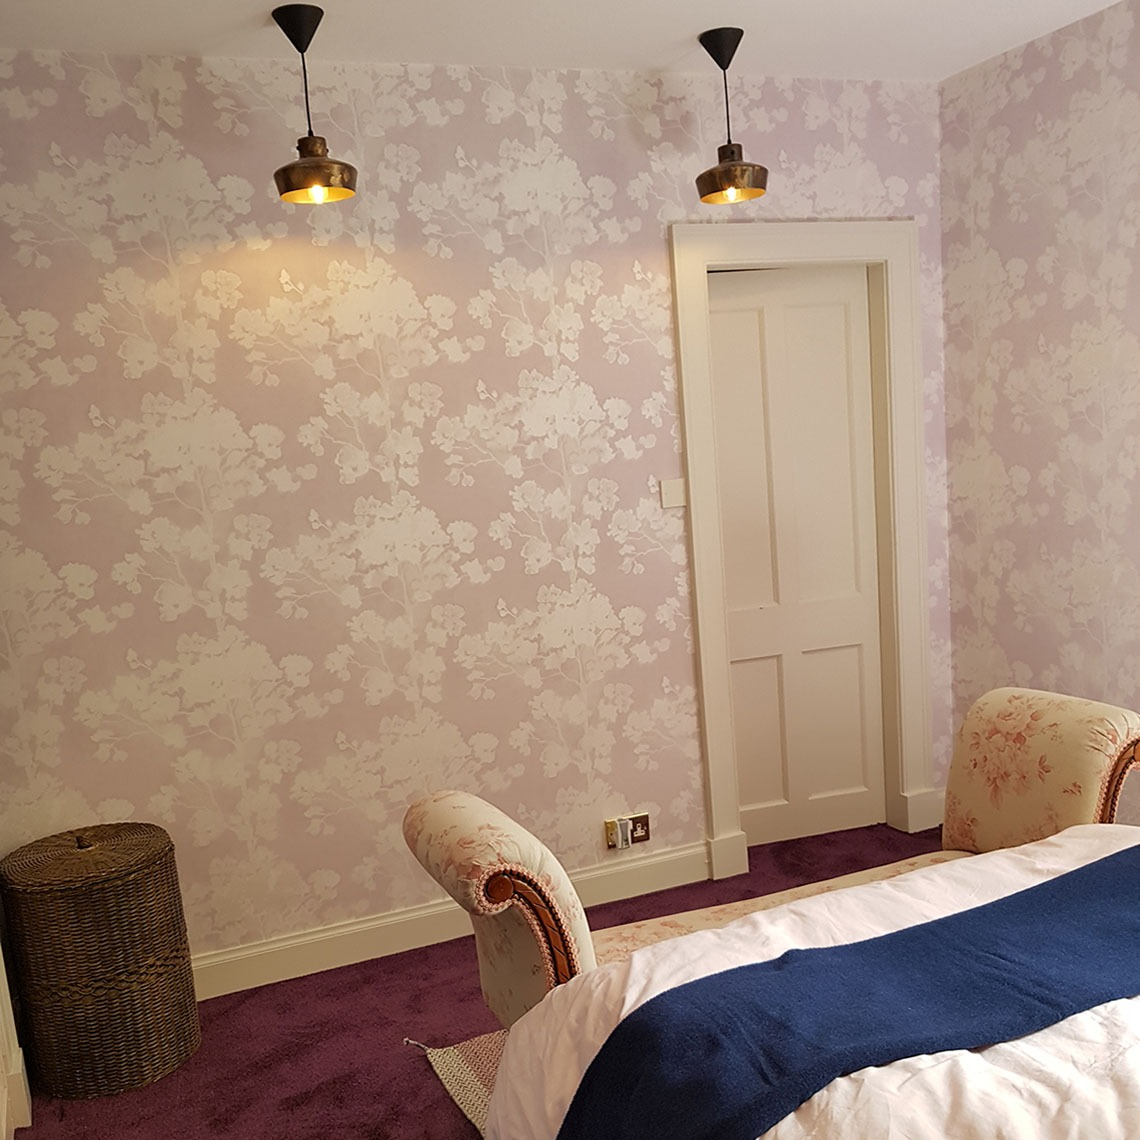 pink flower wall paper, tom dixon pendants, antique ottoman blue throw on bed